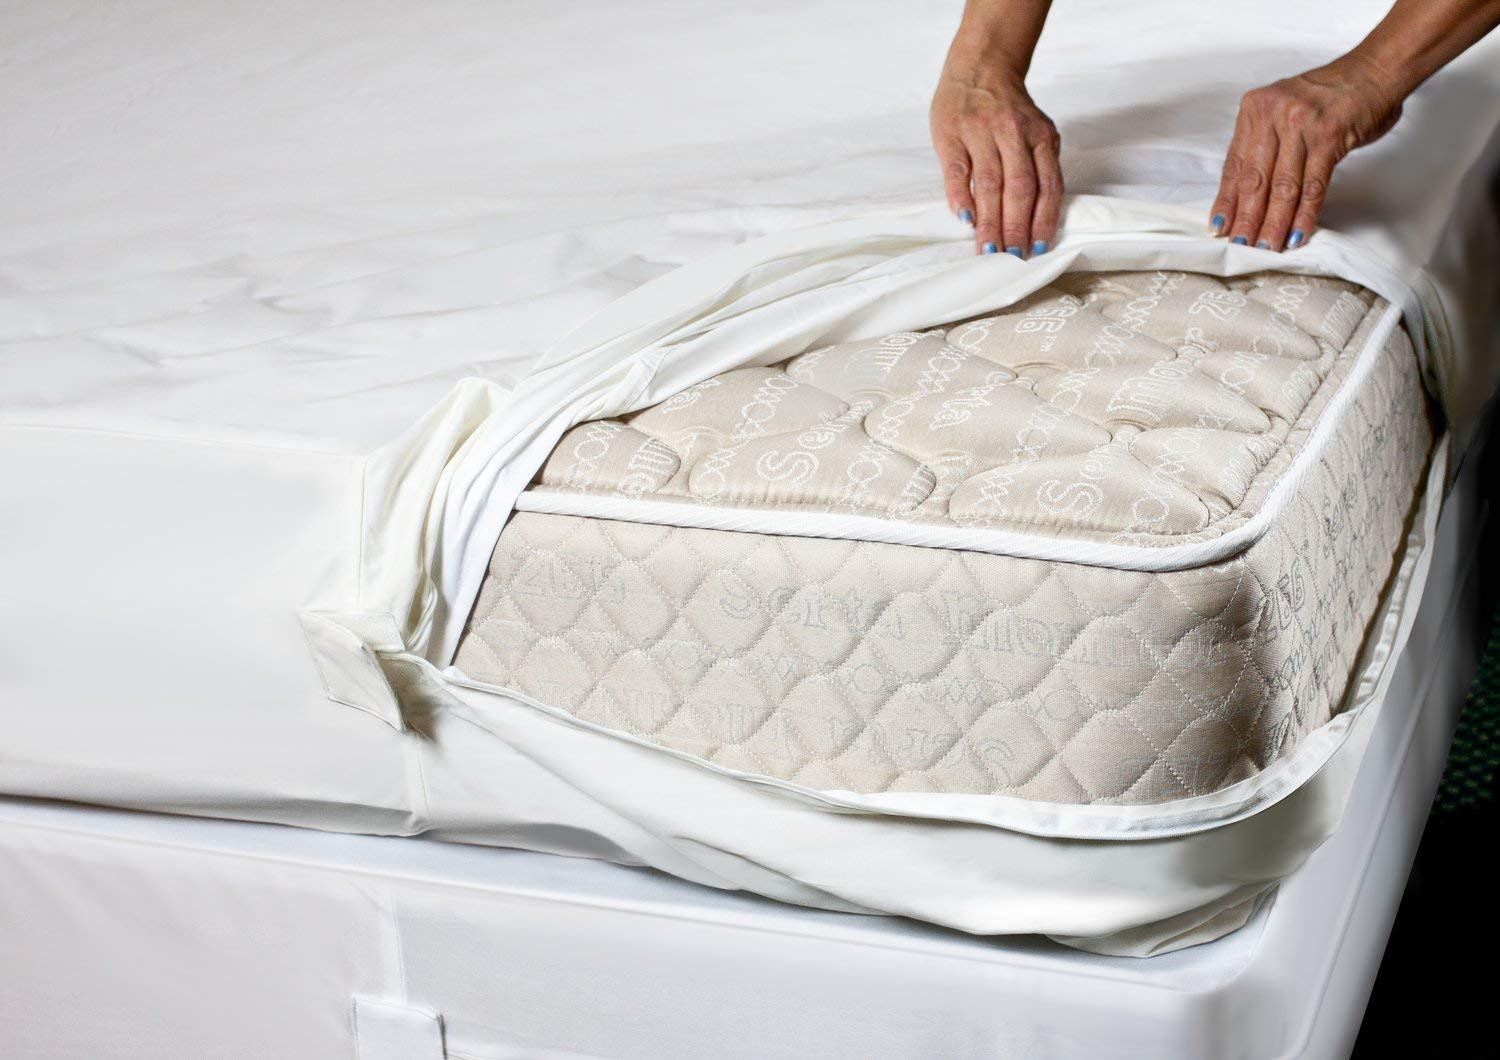 how to get rid of bed bugs in a mattress: treat the mattress